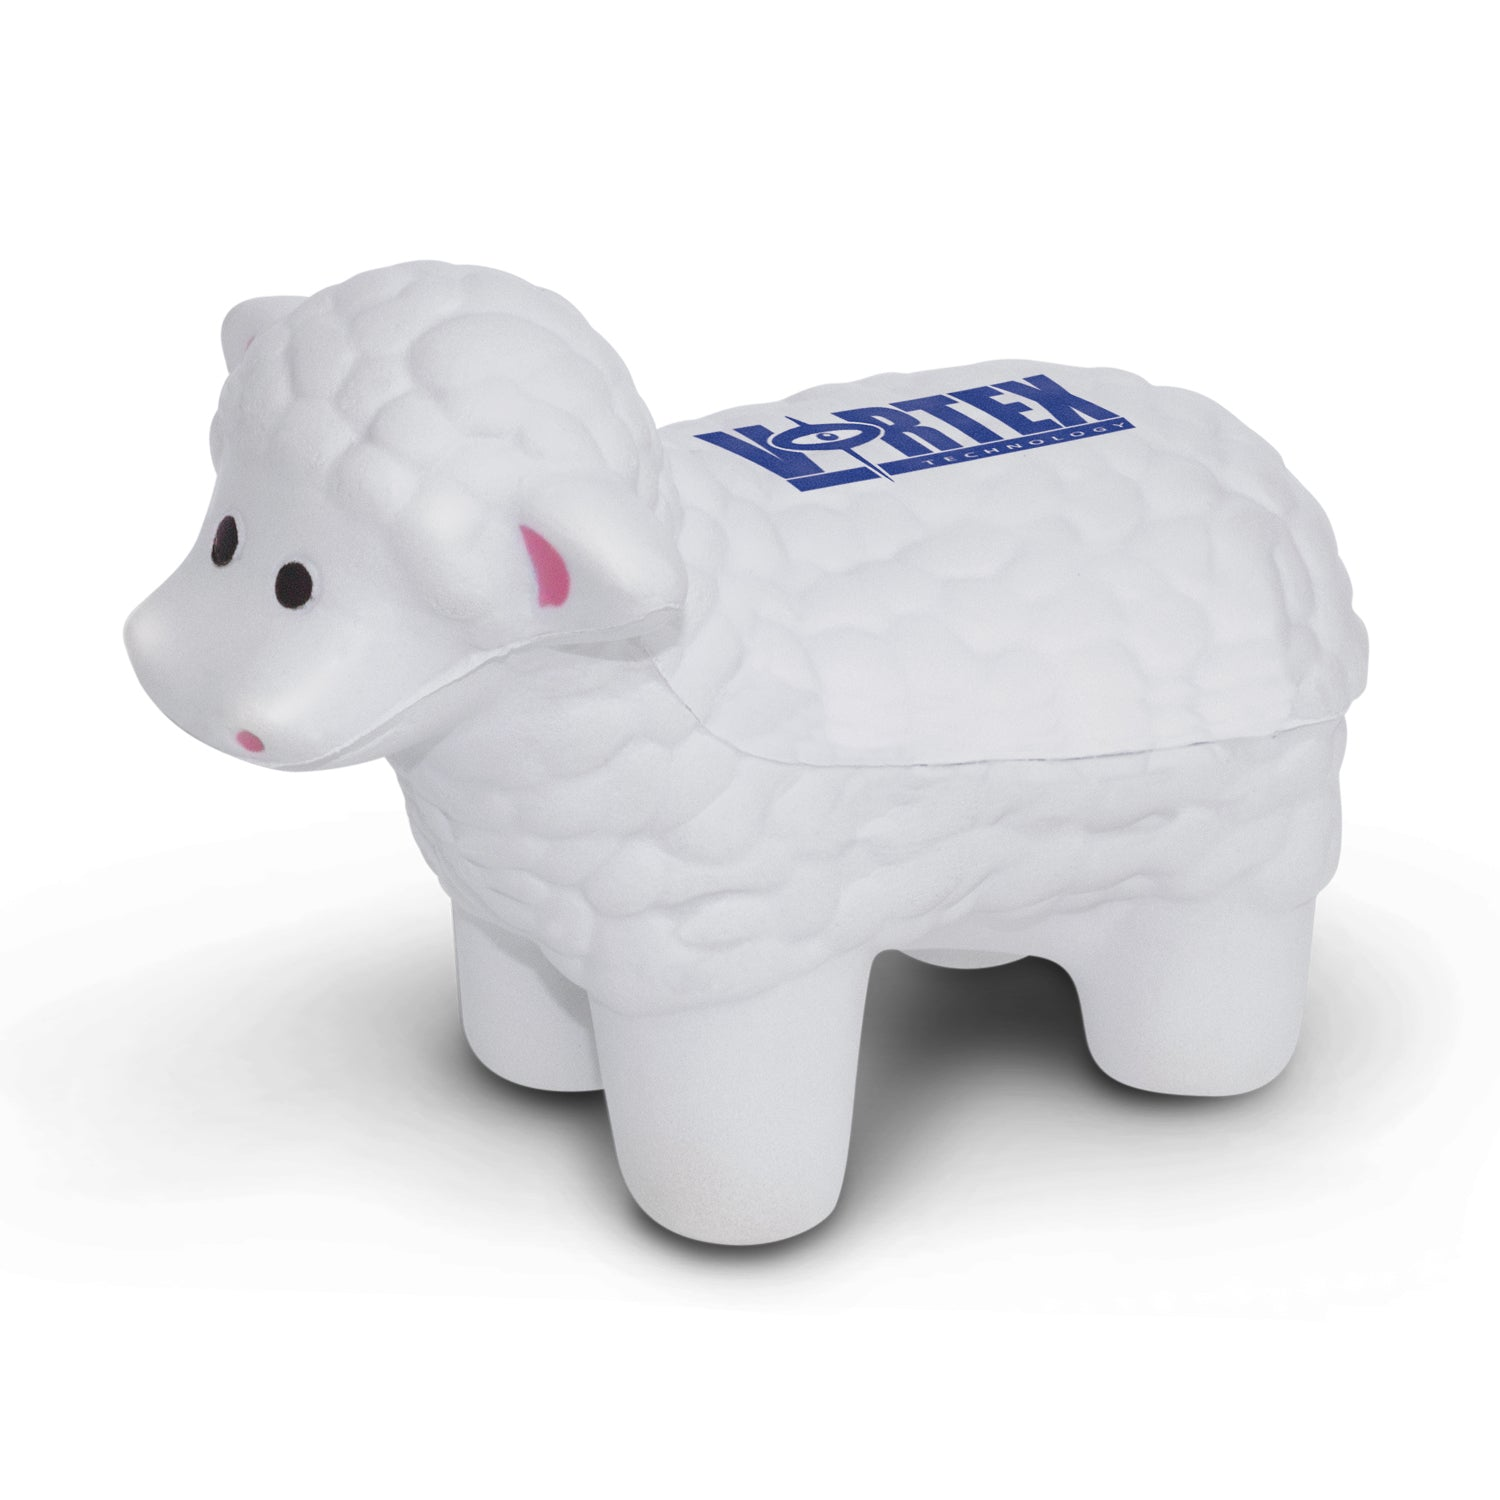 Stress Sheep (SSB-25T) - greenpac.com.au